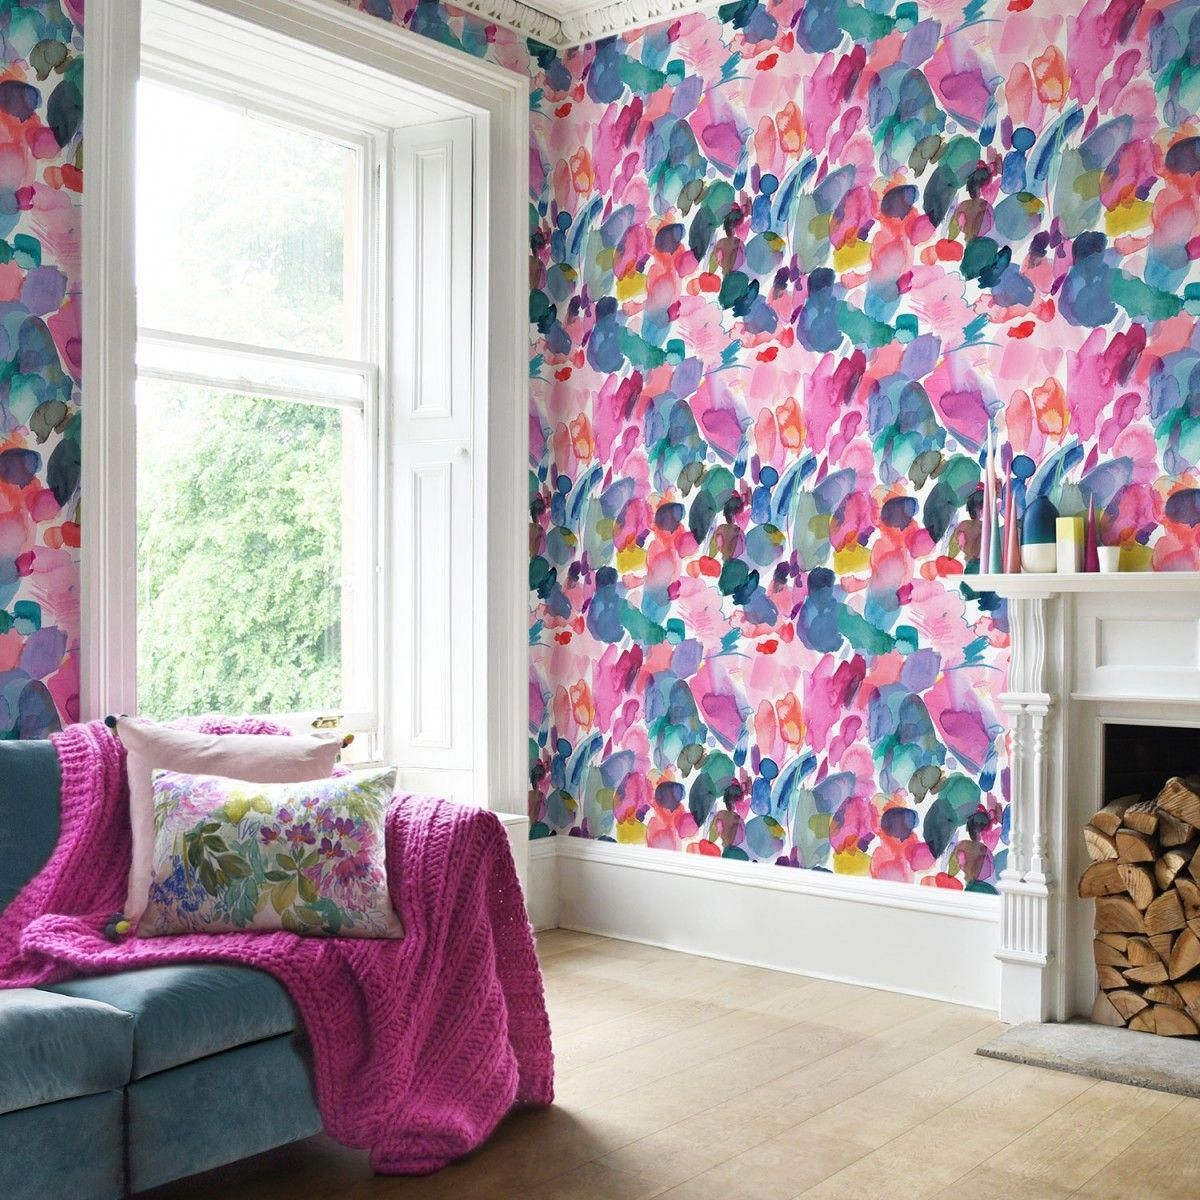 Floral Wallpapershaokhome Dr3073 Non Woven Vintage Flower